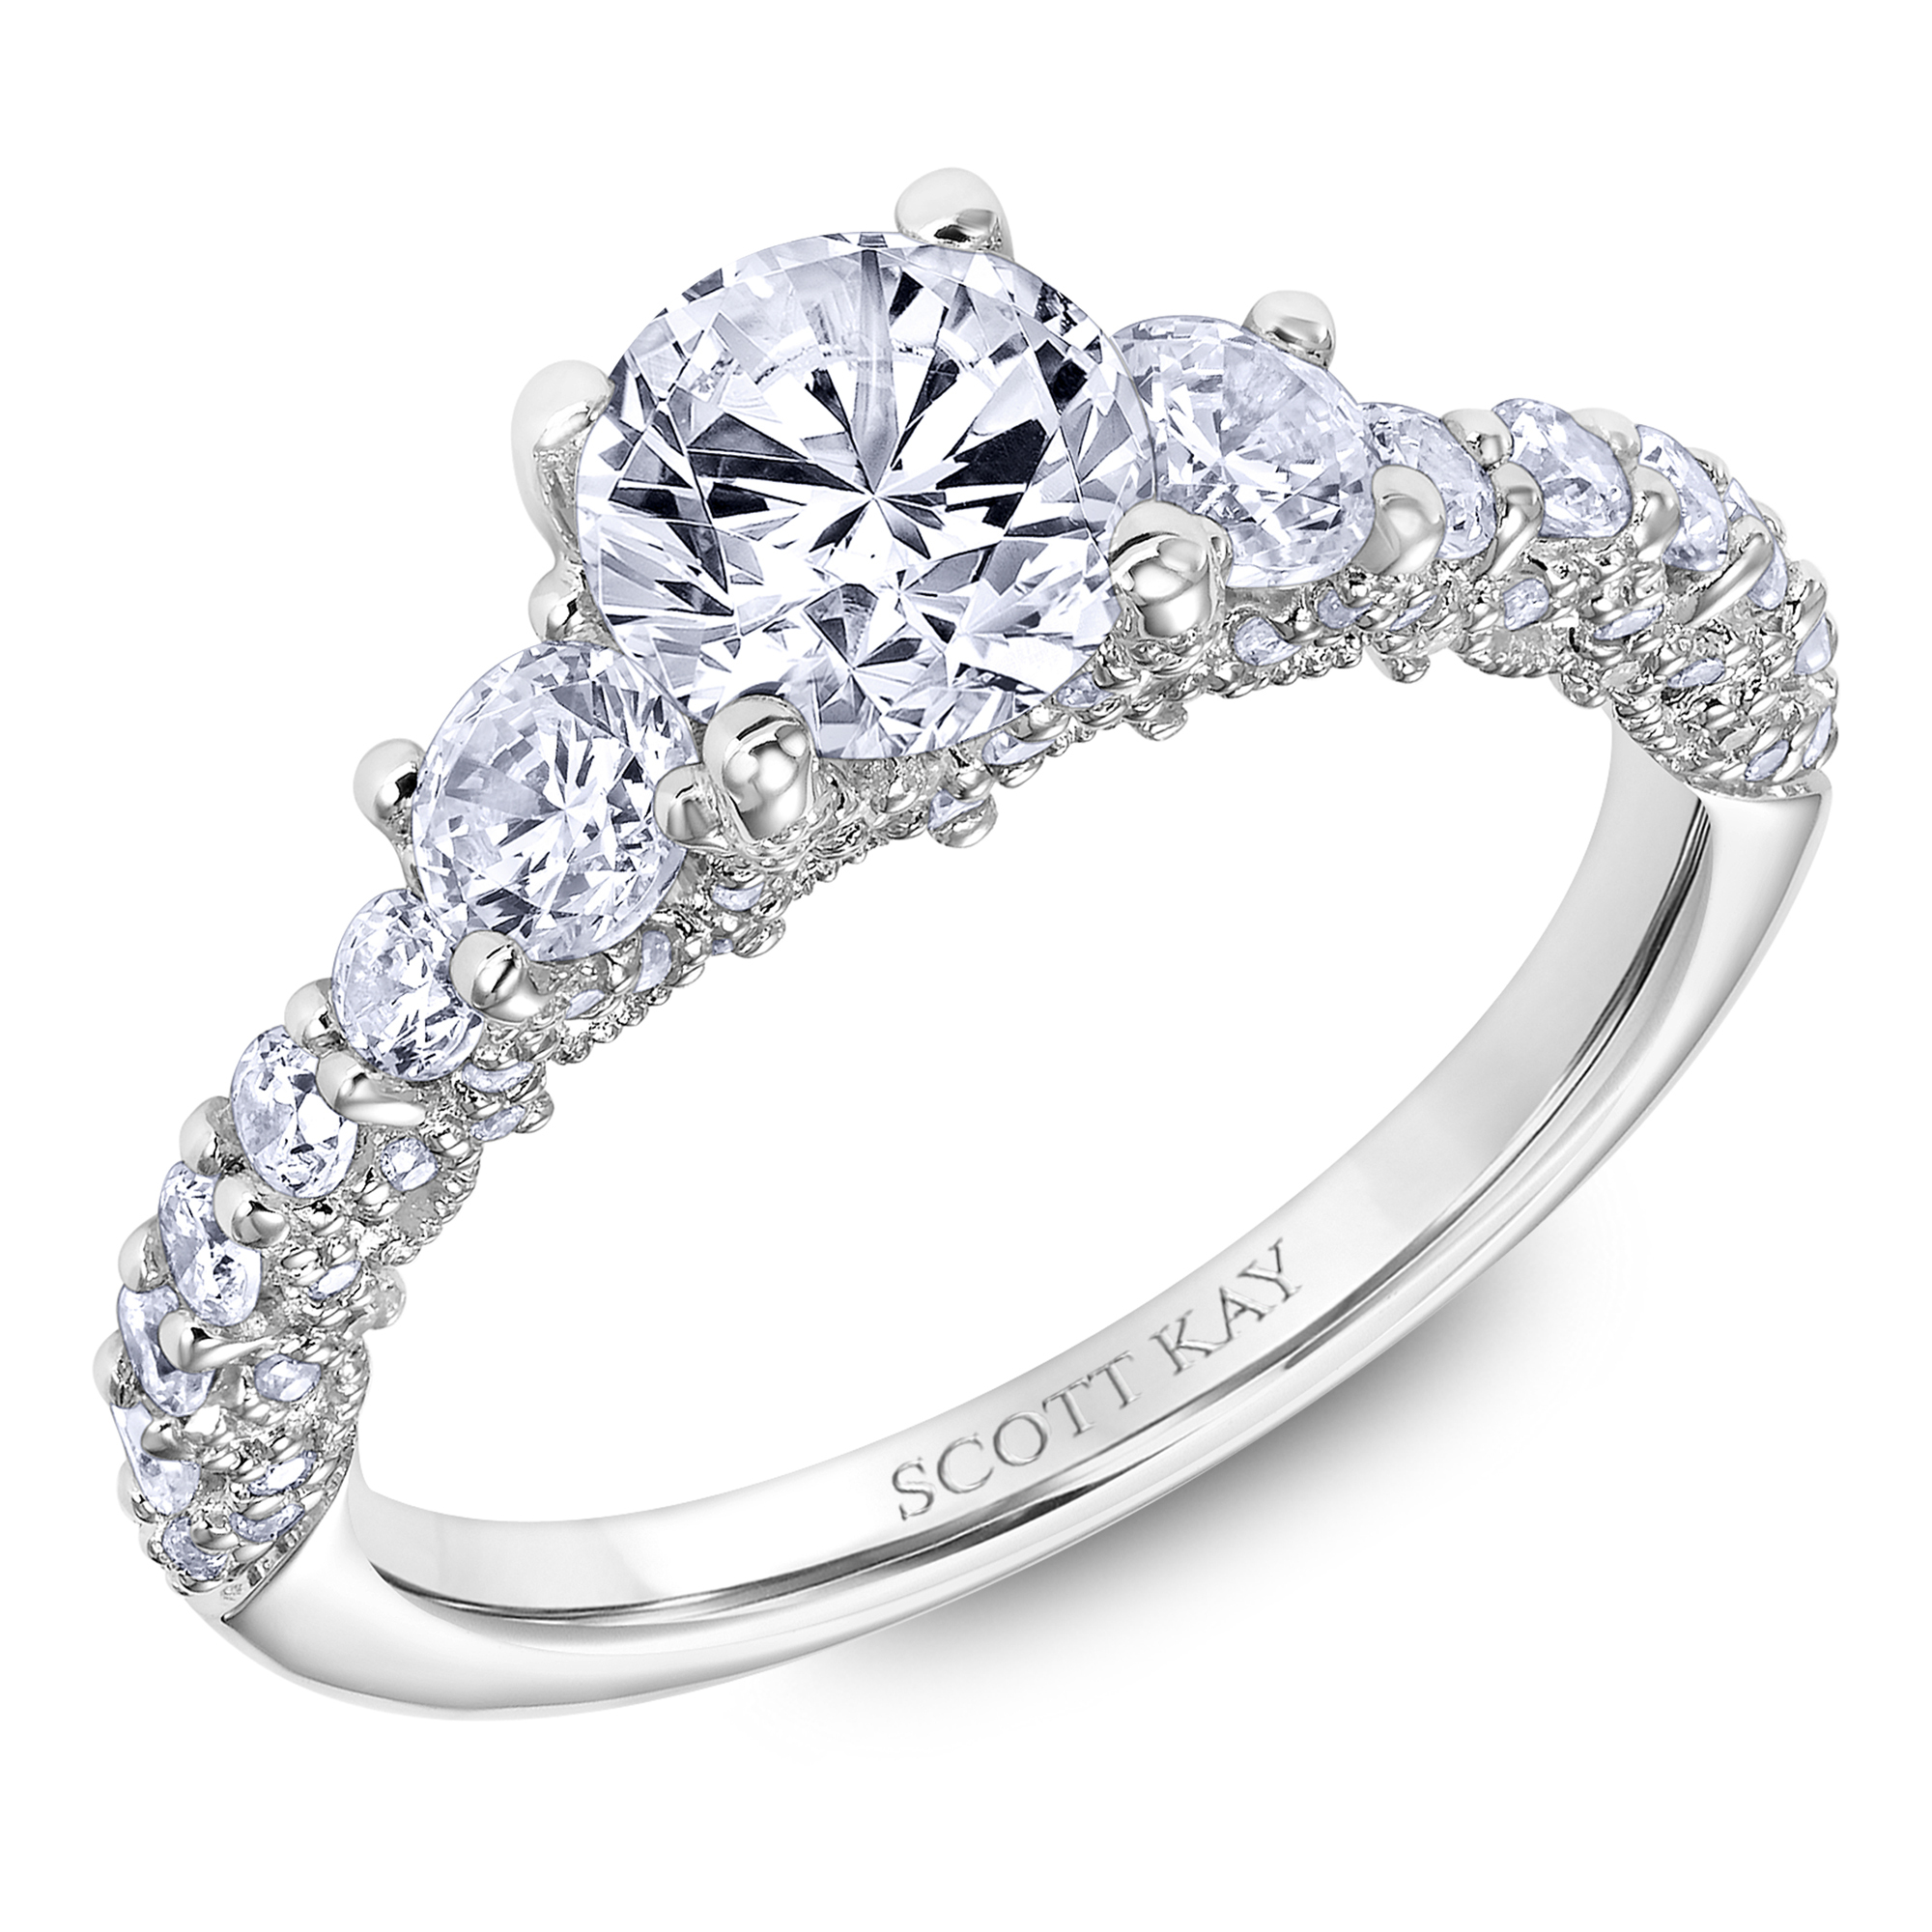 los rings brokers street scott ca diamondbrokers jewelry francisco store san diamond near kay union engagement of altos